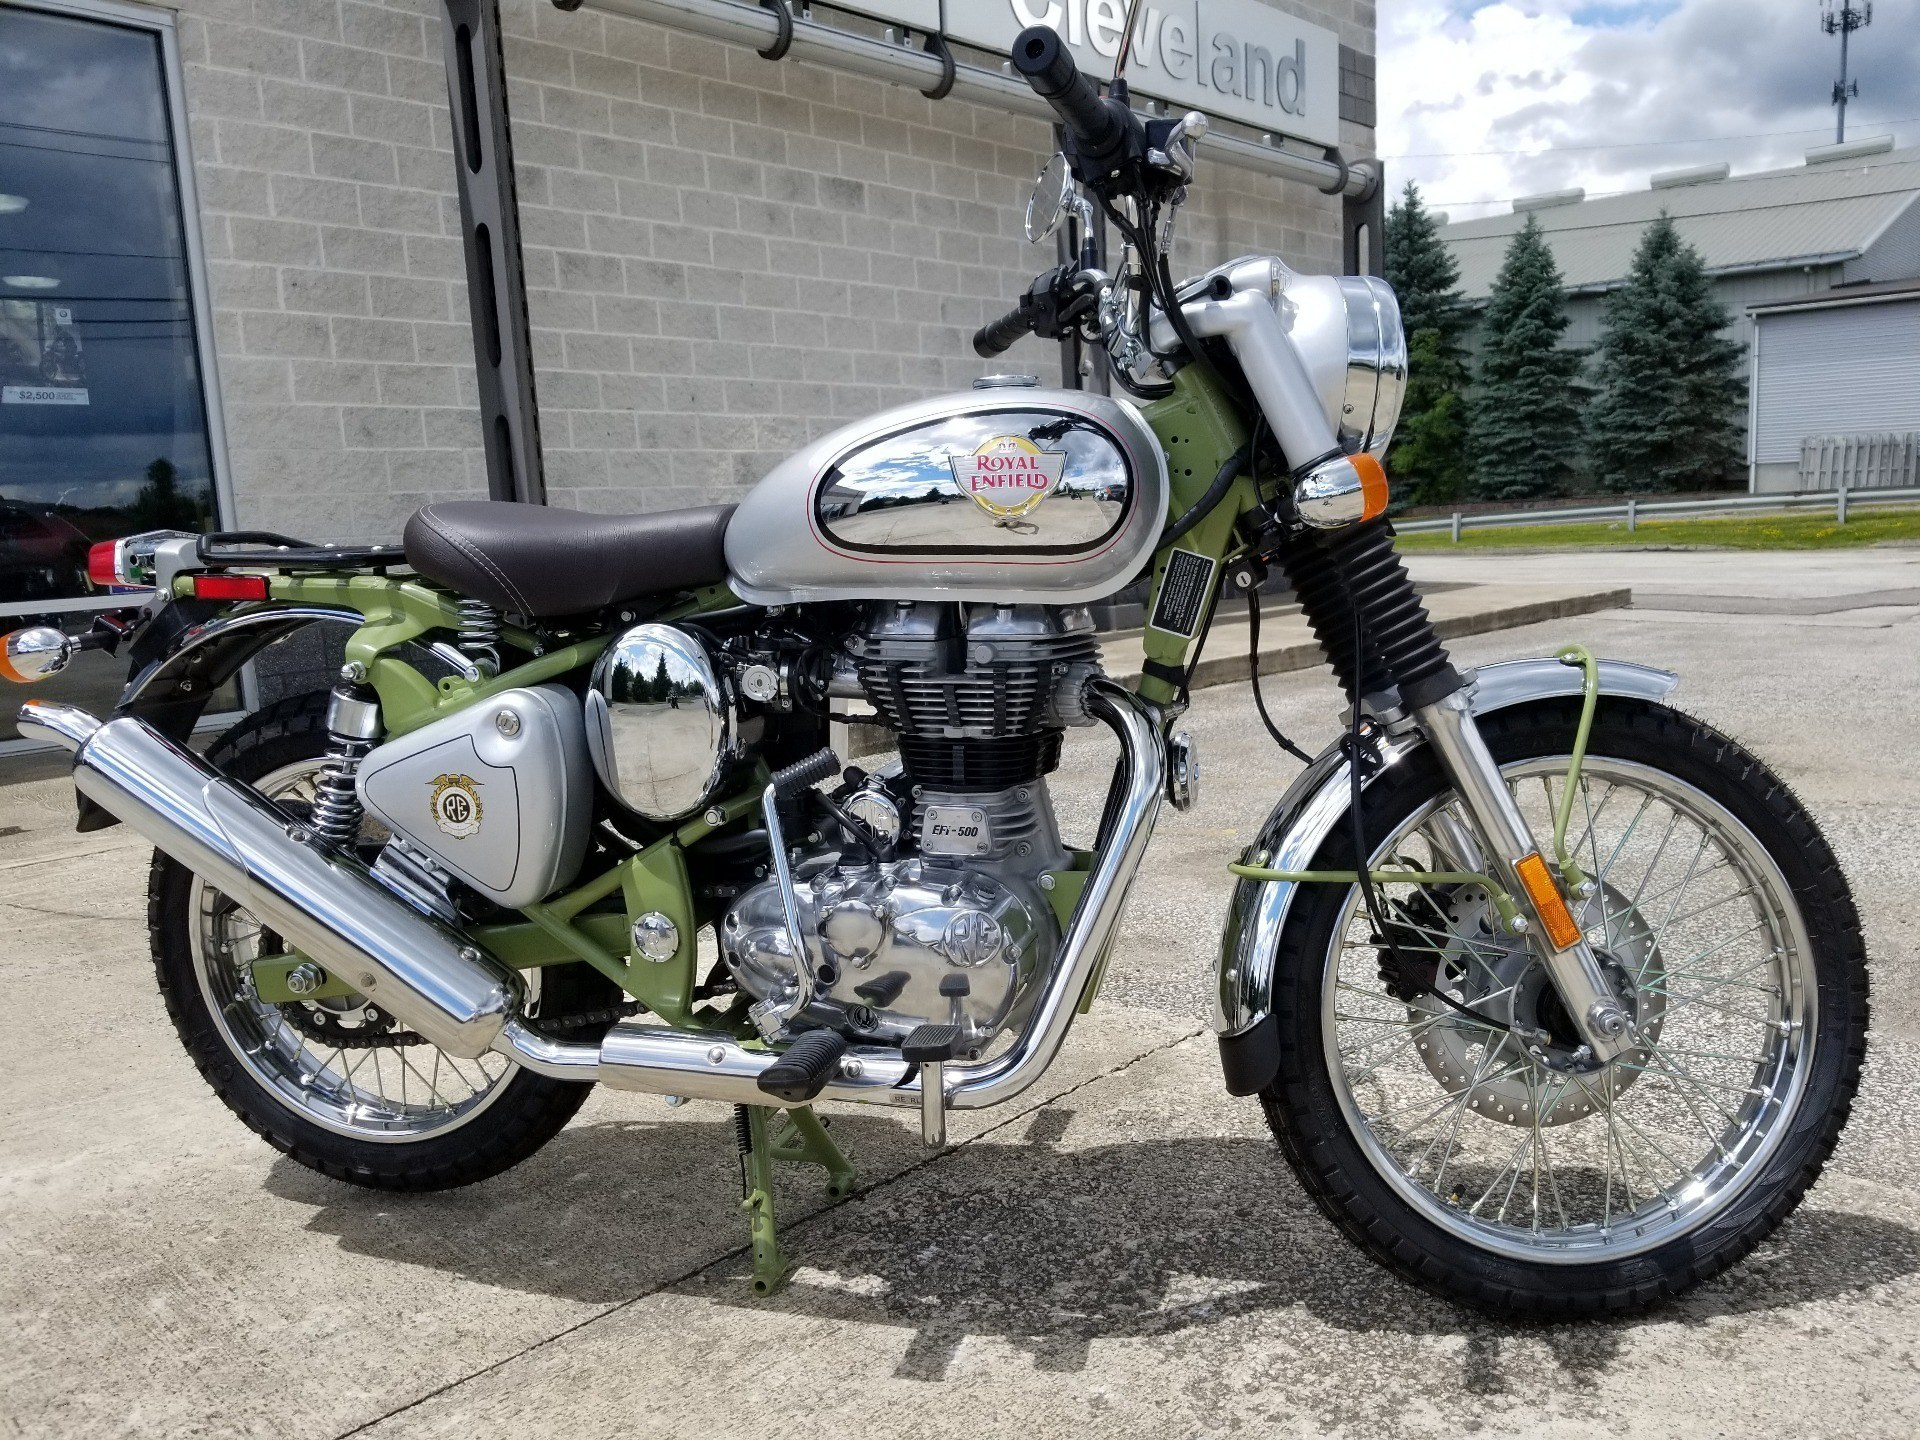 2020 Royal Enfield Bullet Trials Works Replica 500 Limited Edition in Aurora, Ohio - Photo 1